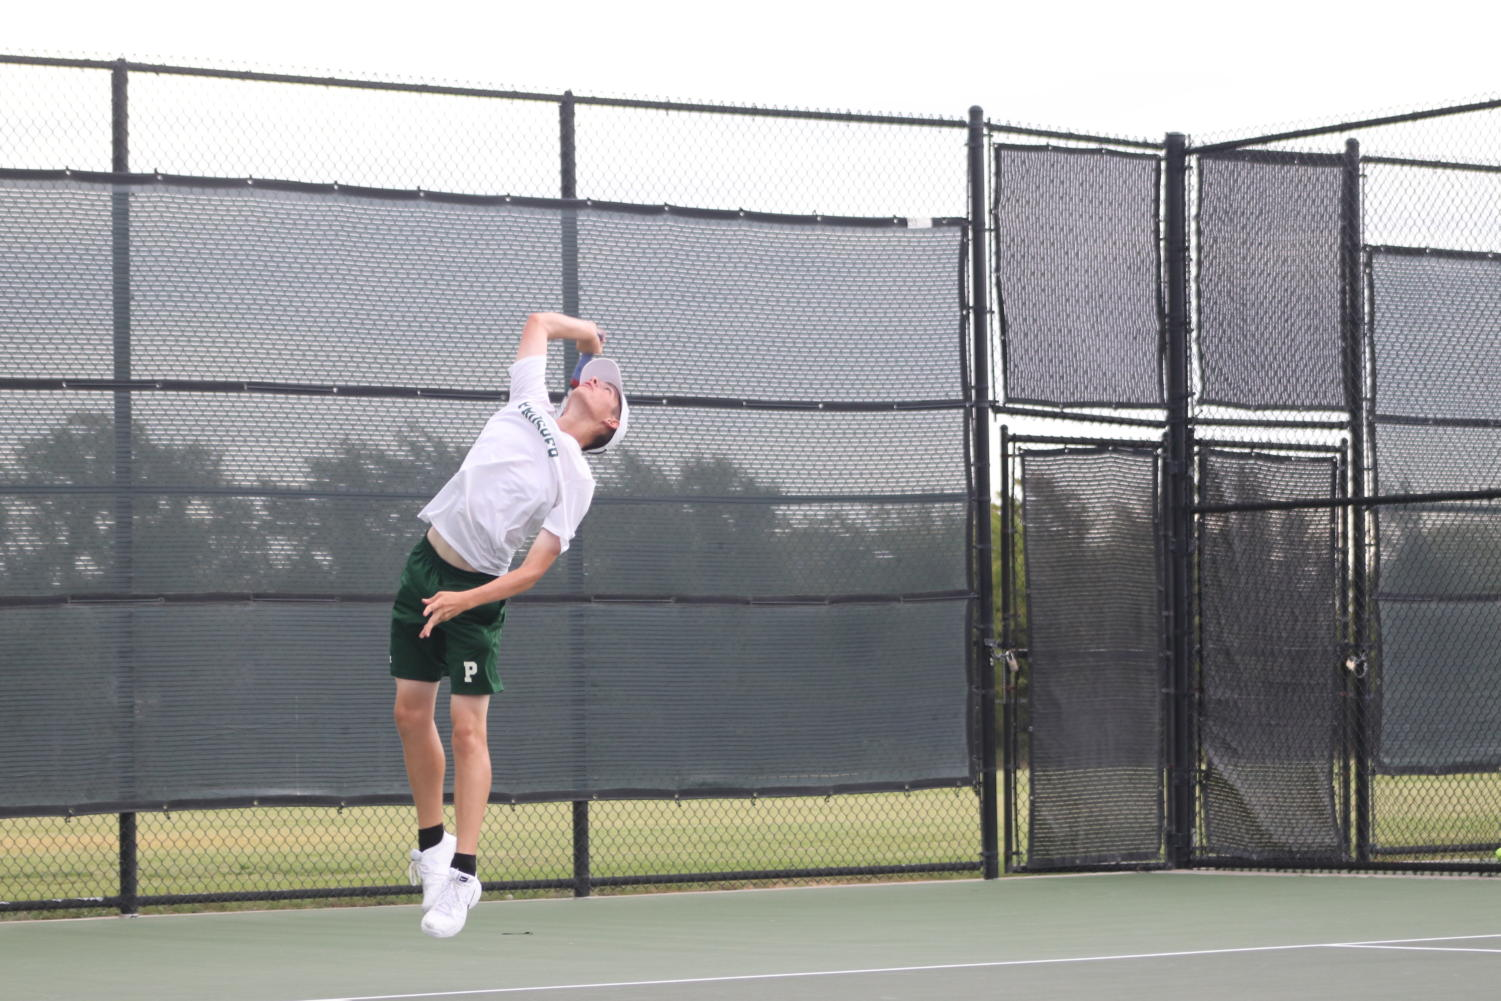 Junior varsity tennis player, Andrew Kochevar, serves the ball at McKinney North opponent.